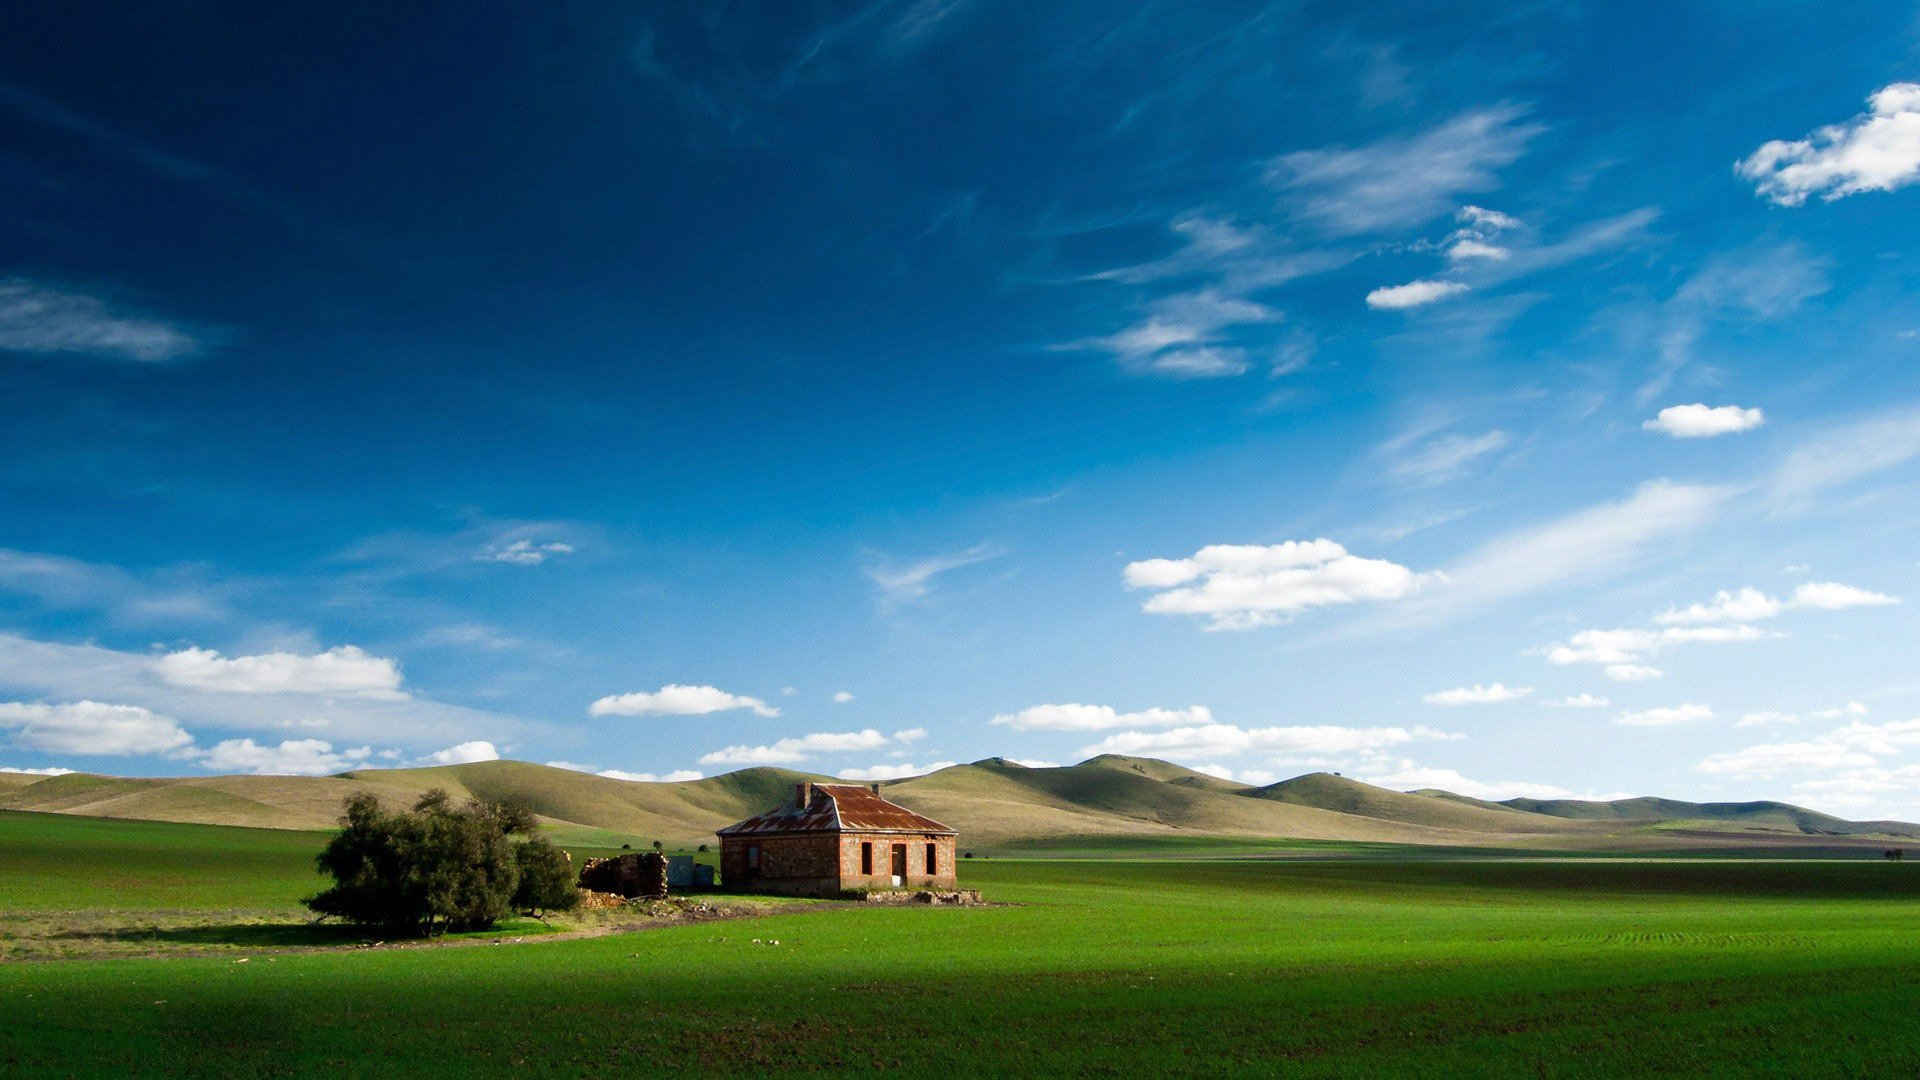 Download Abandoned Brick House On Green Field  Wallpaper